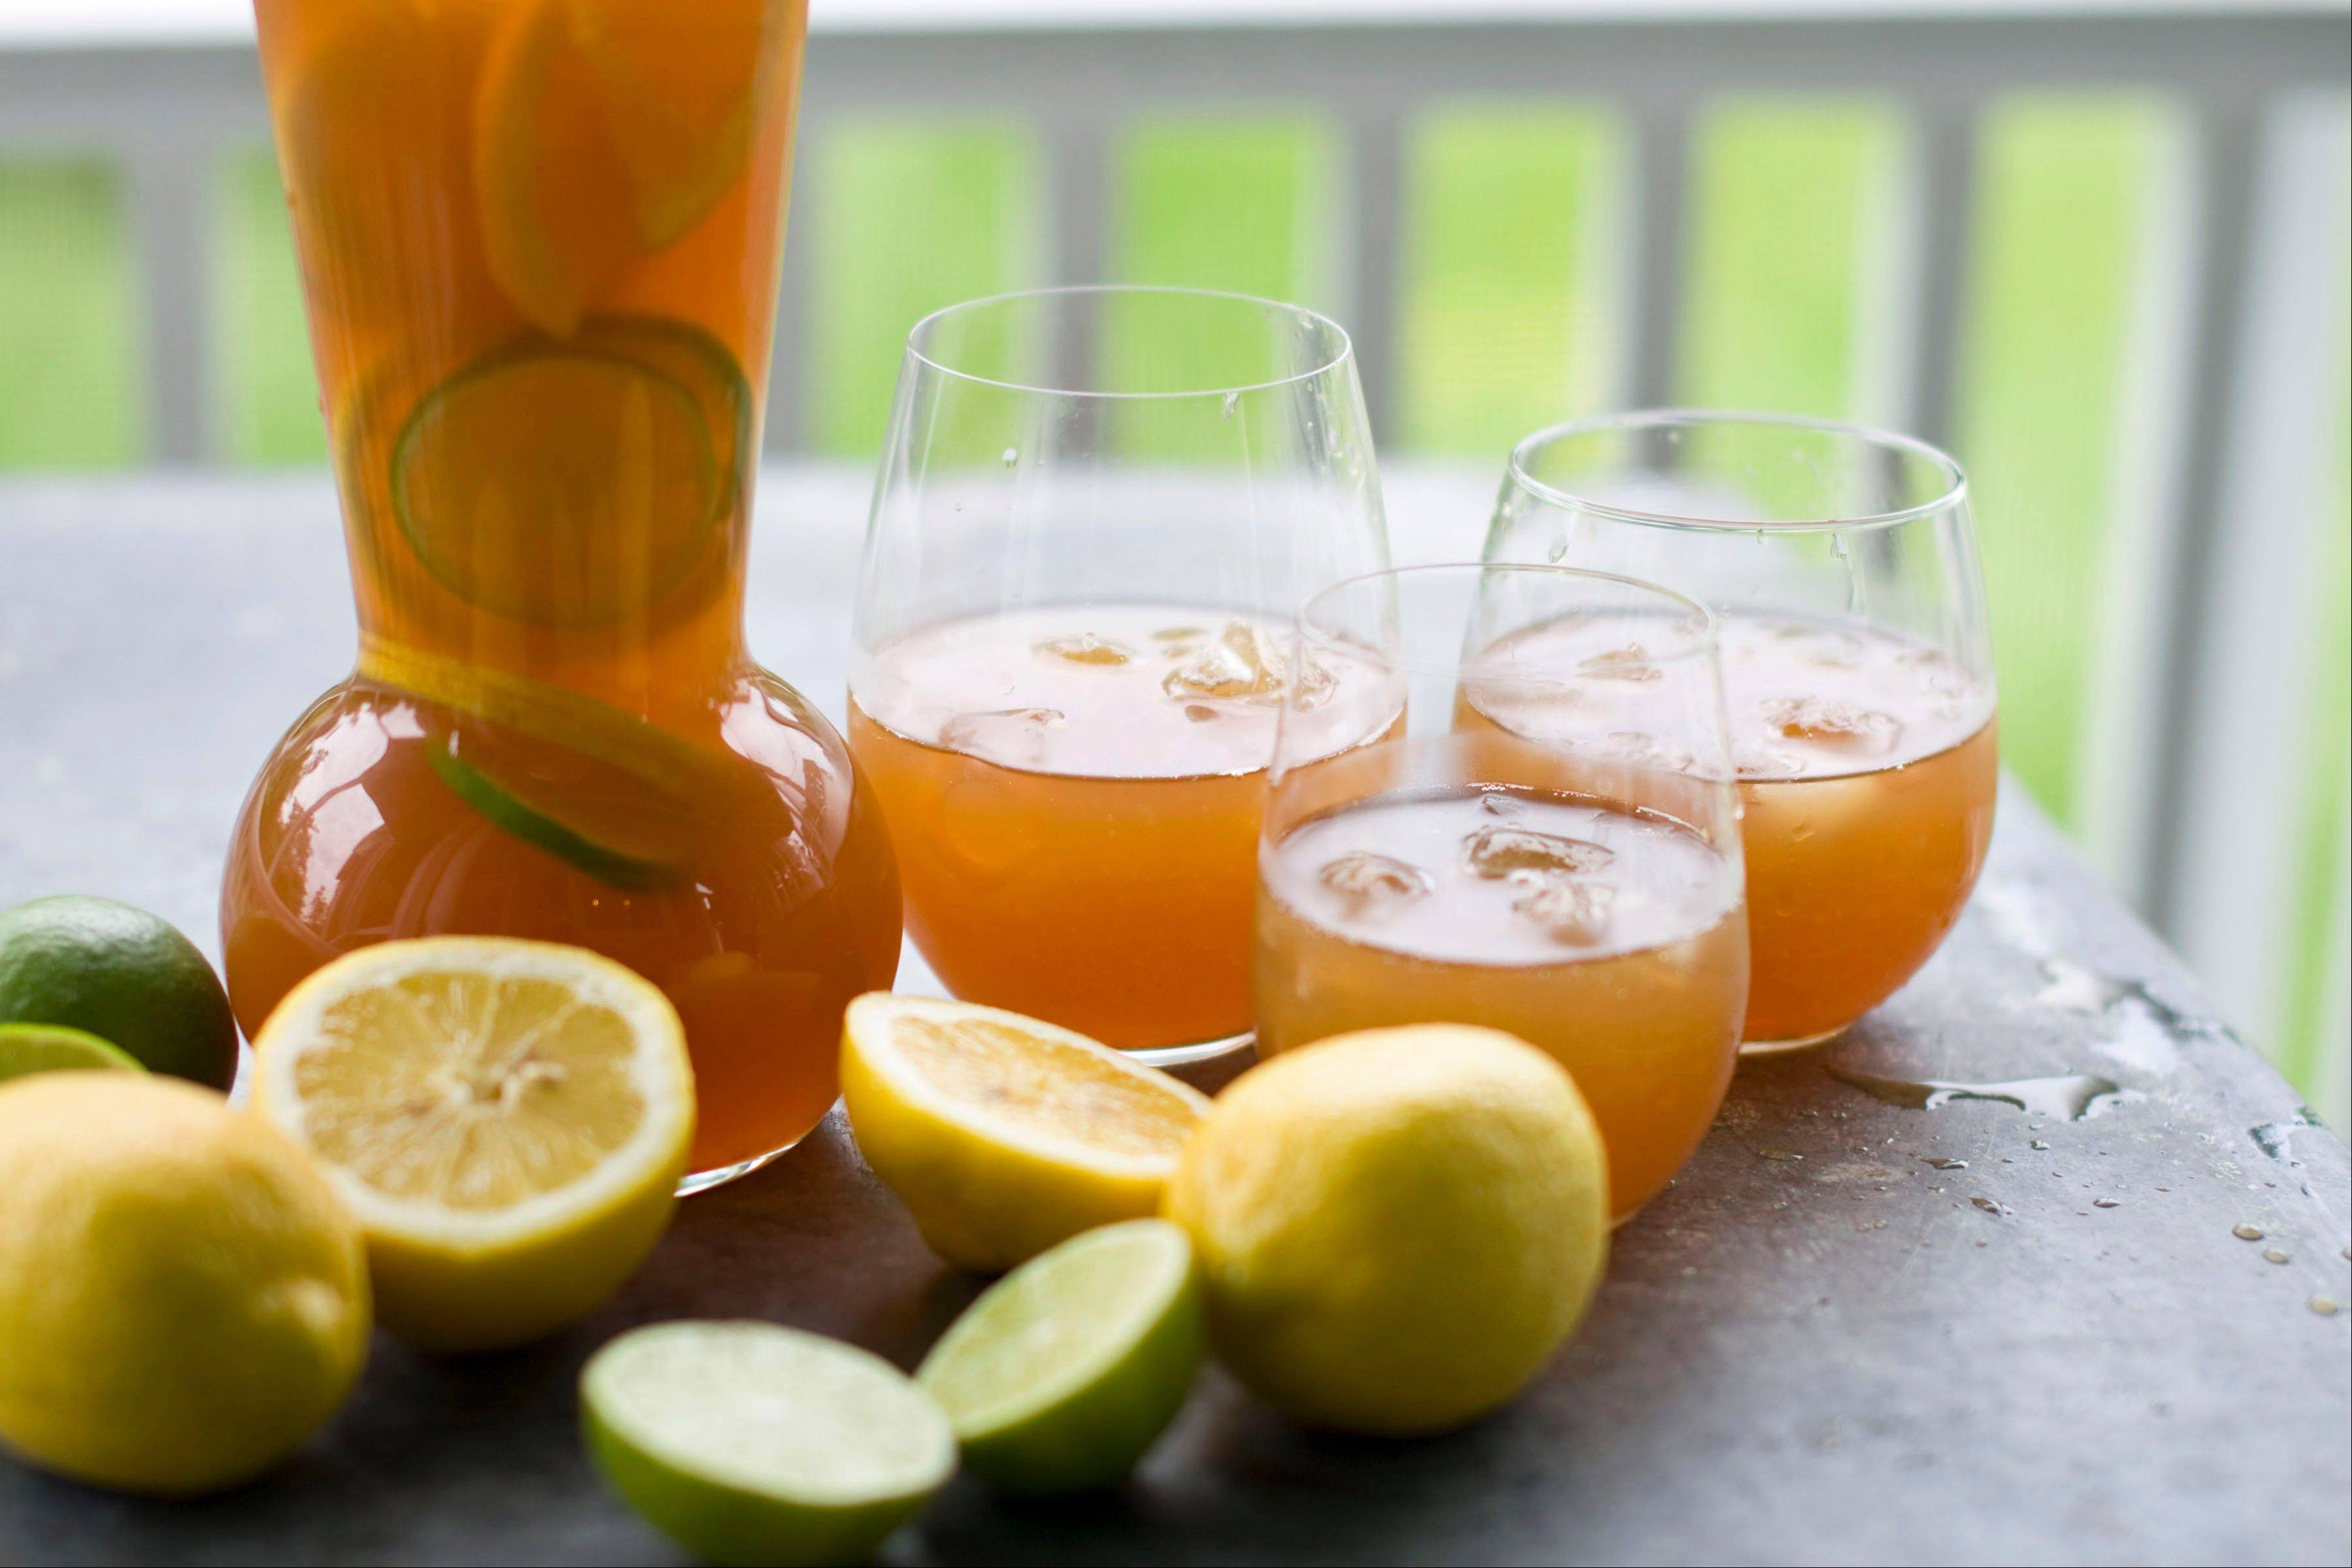 This refreshing summer punch mixes orange, lemon and lime juices with black and mint tea.